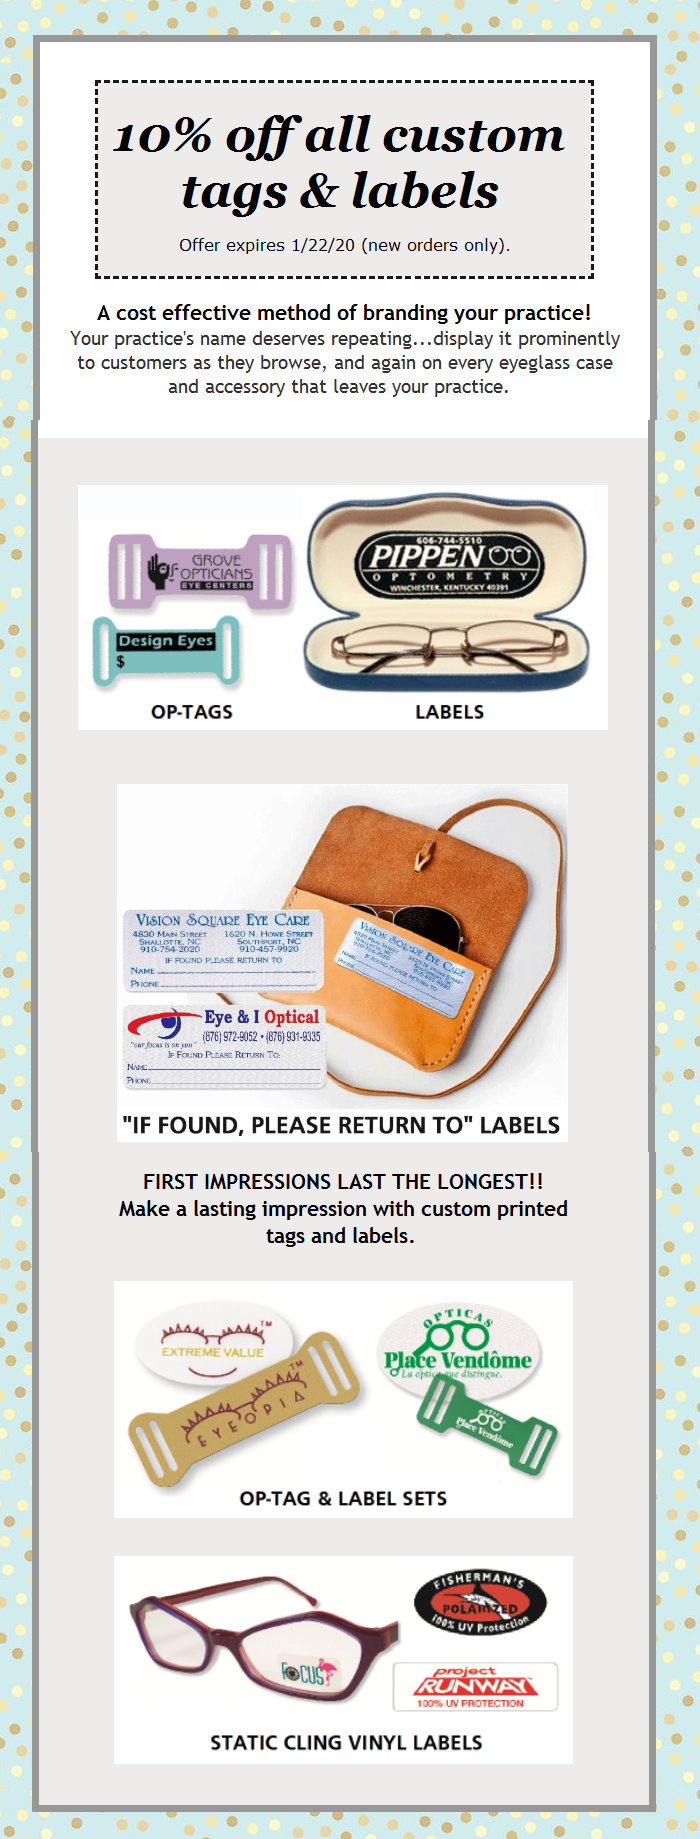 This is a photo of Eloquent Optical Tags and Labels